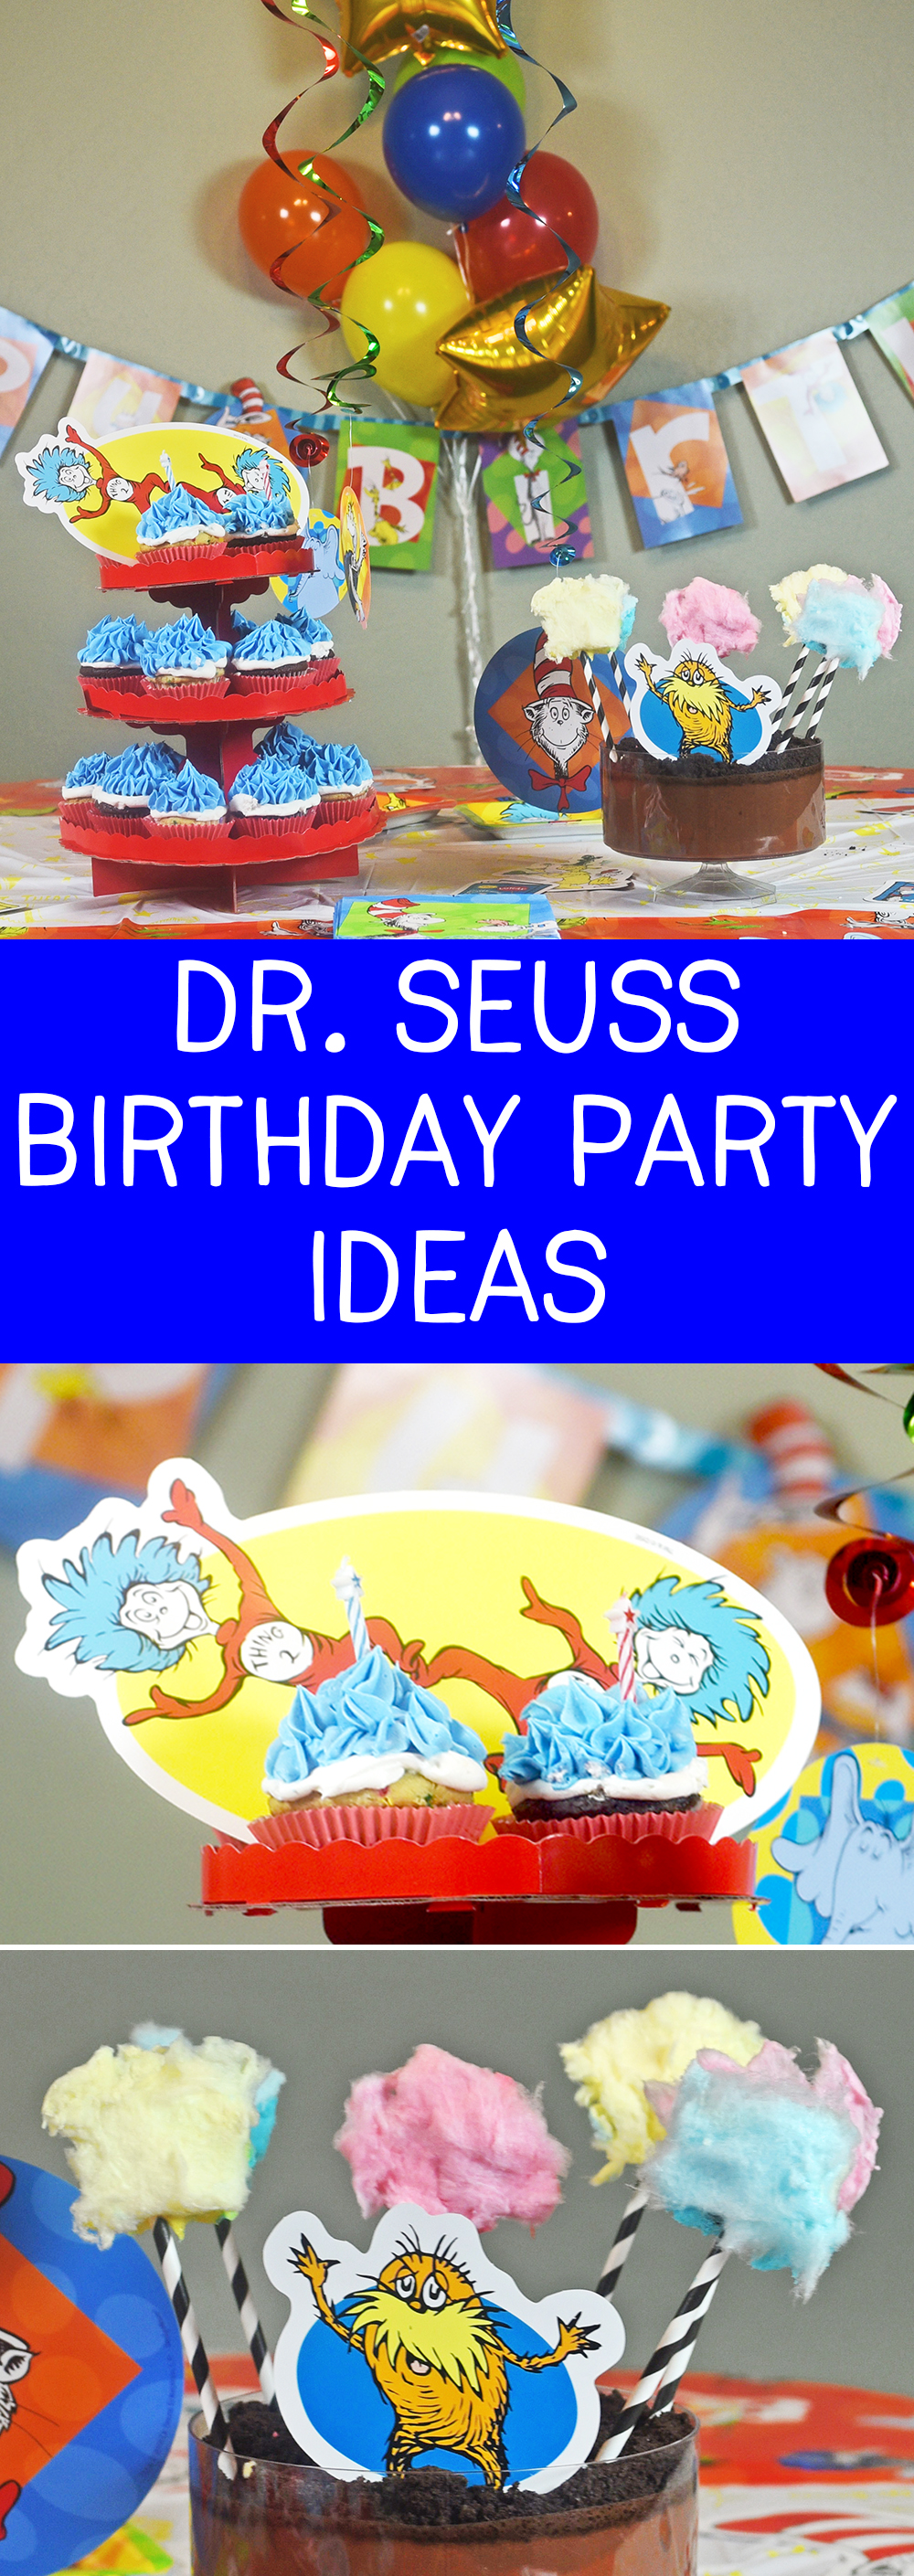 This Dr. Seuss Birthday Party is perfect for any Dr. Seuss book lover!